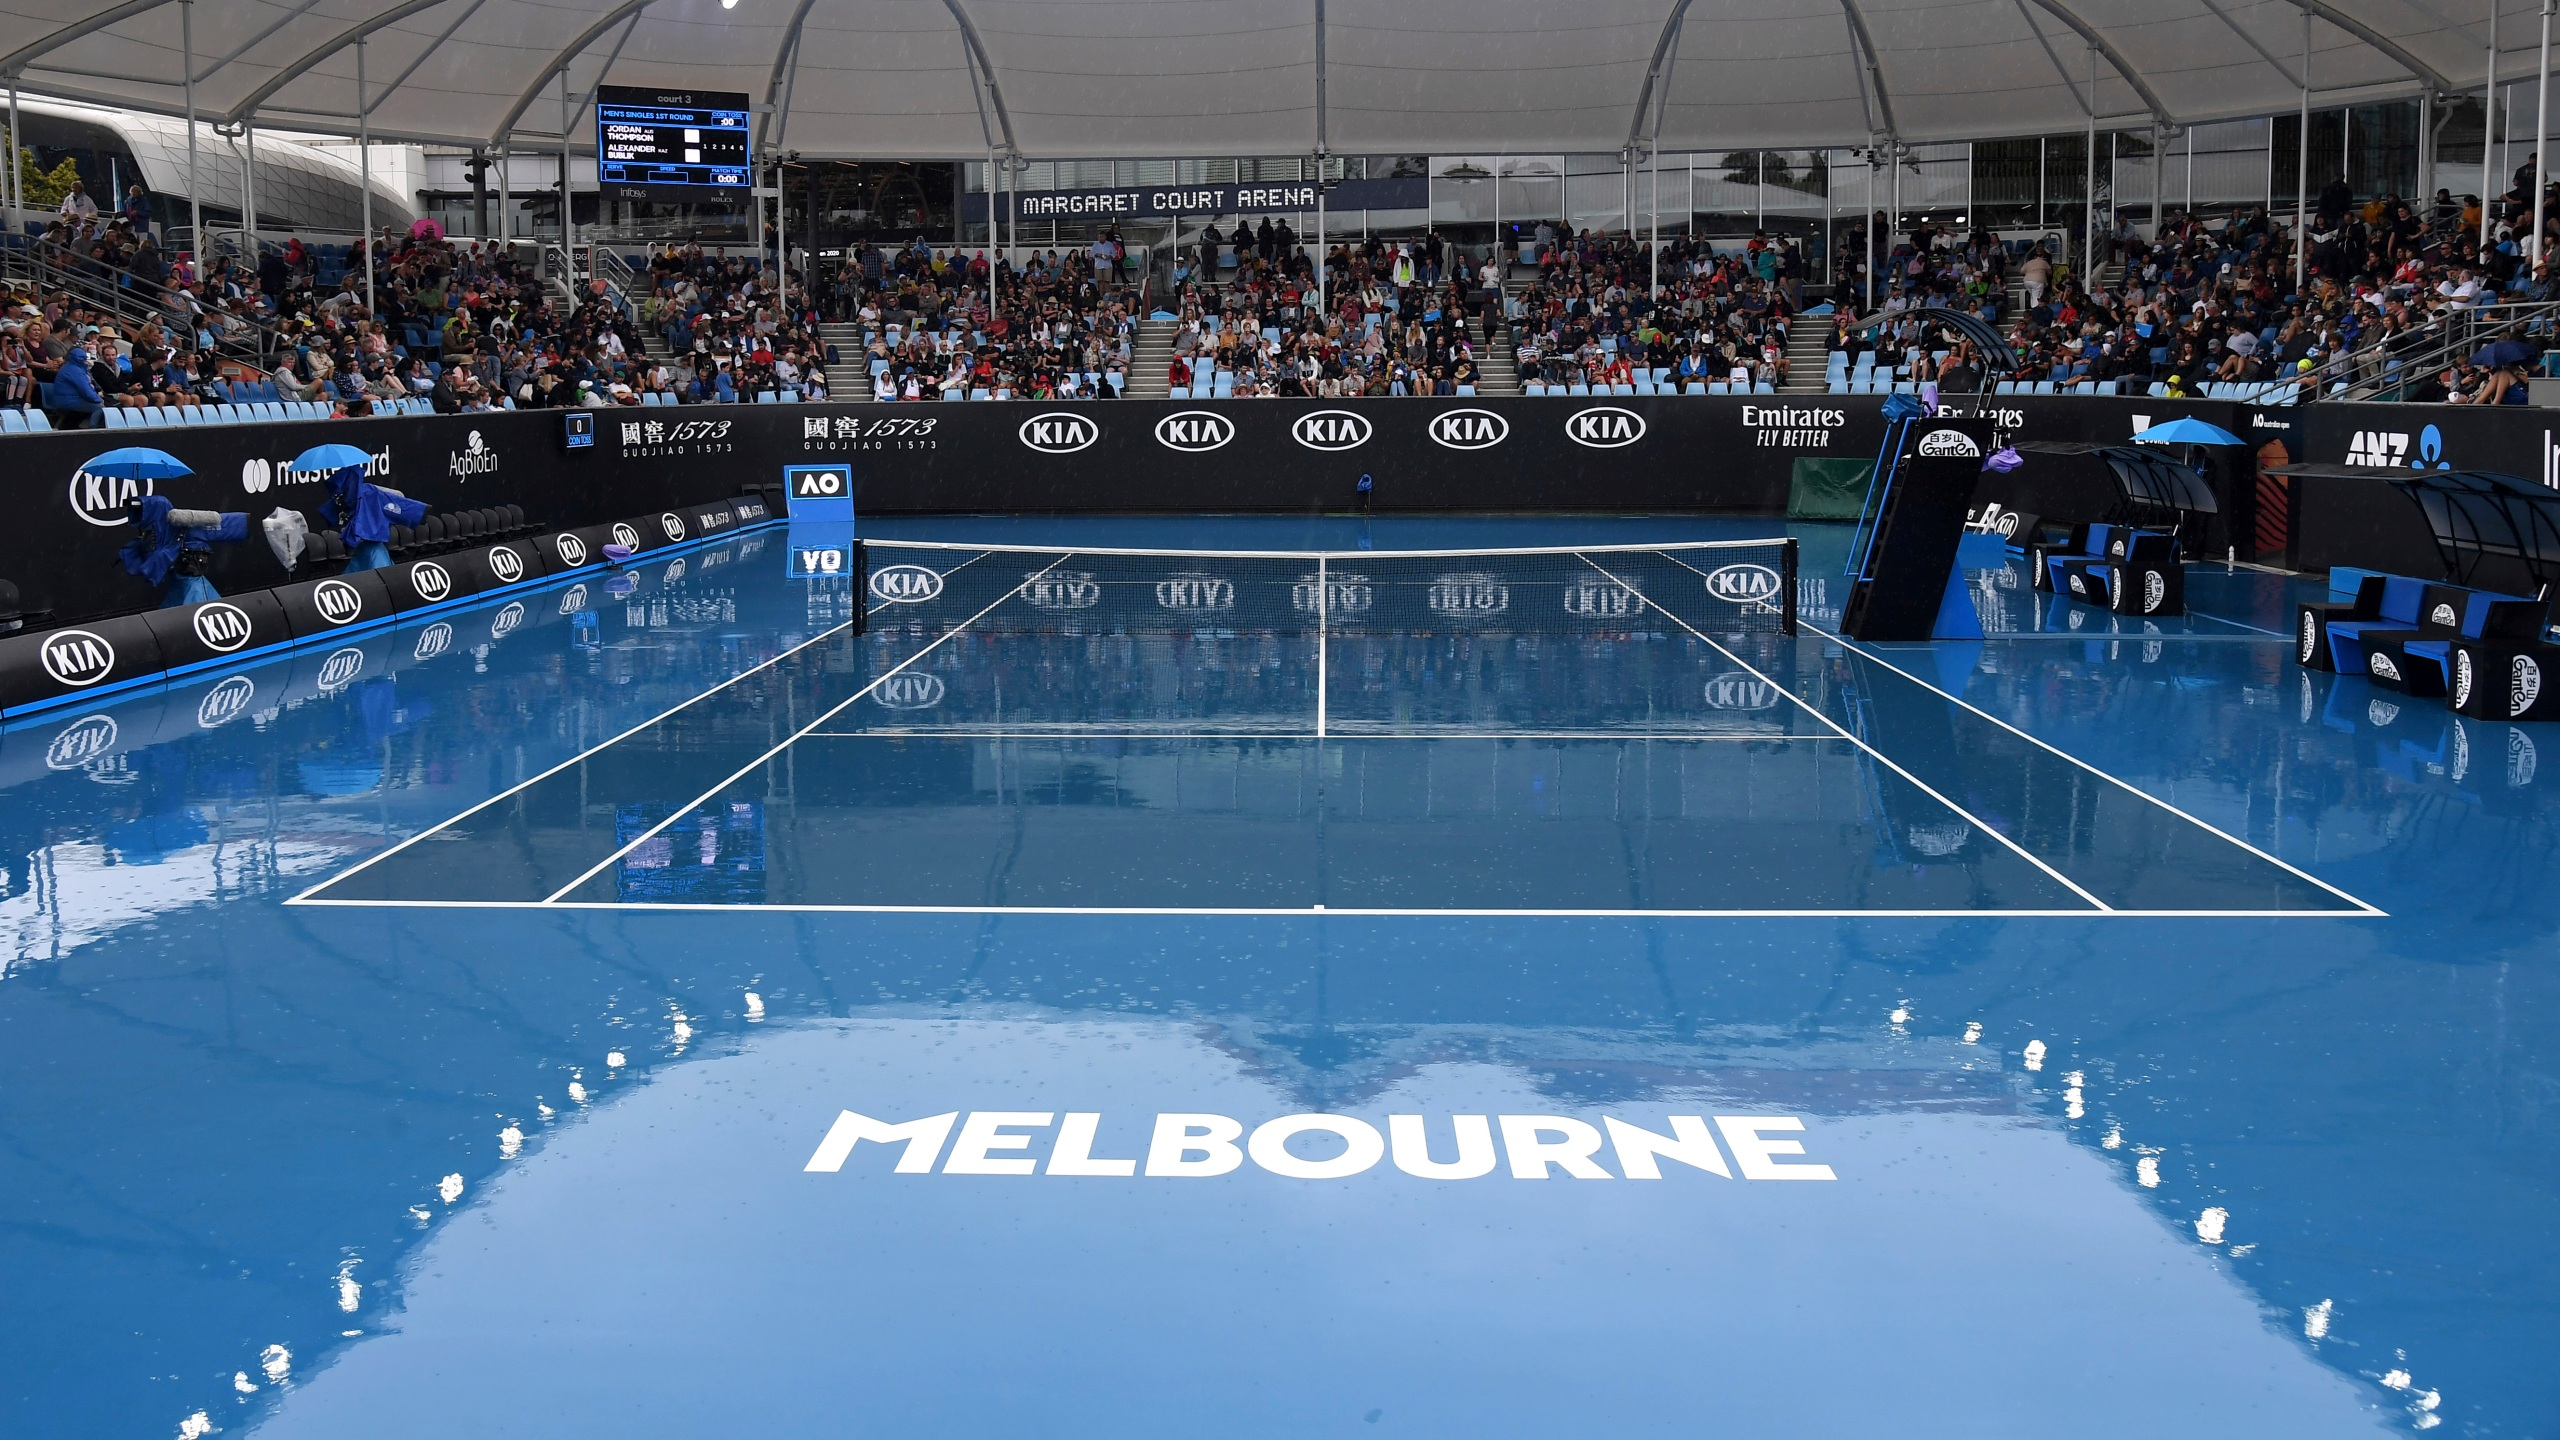 Air Quality Seems Totally Fine On Day 1 At Australian Open